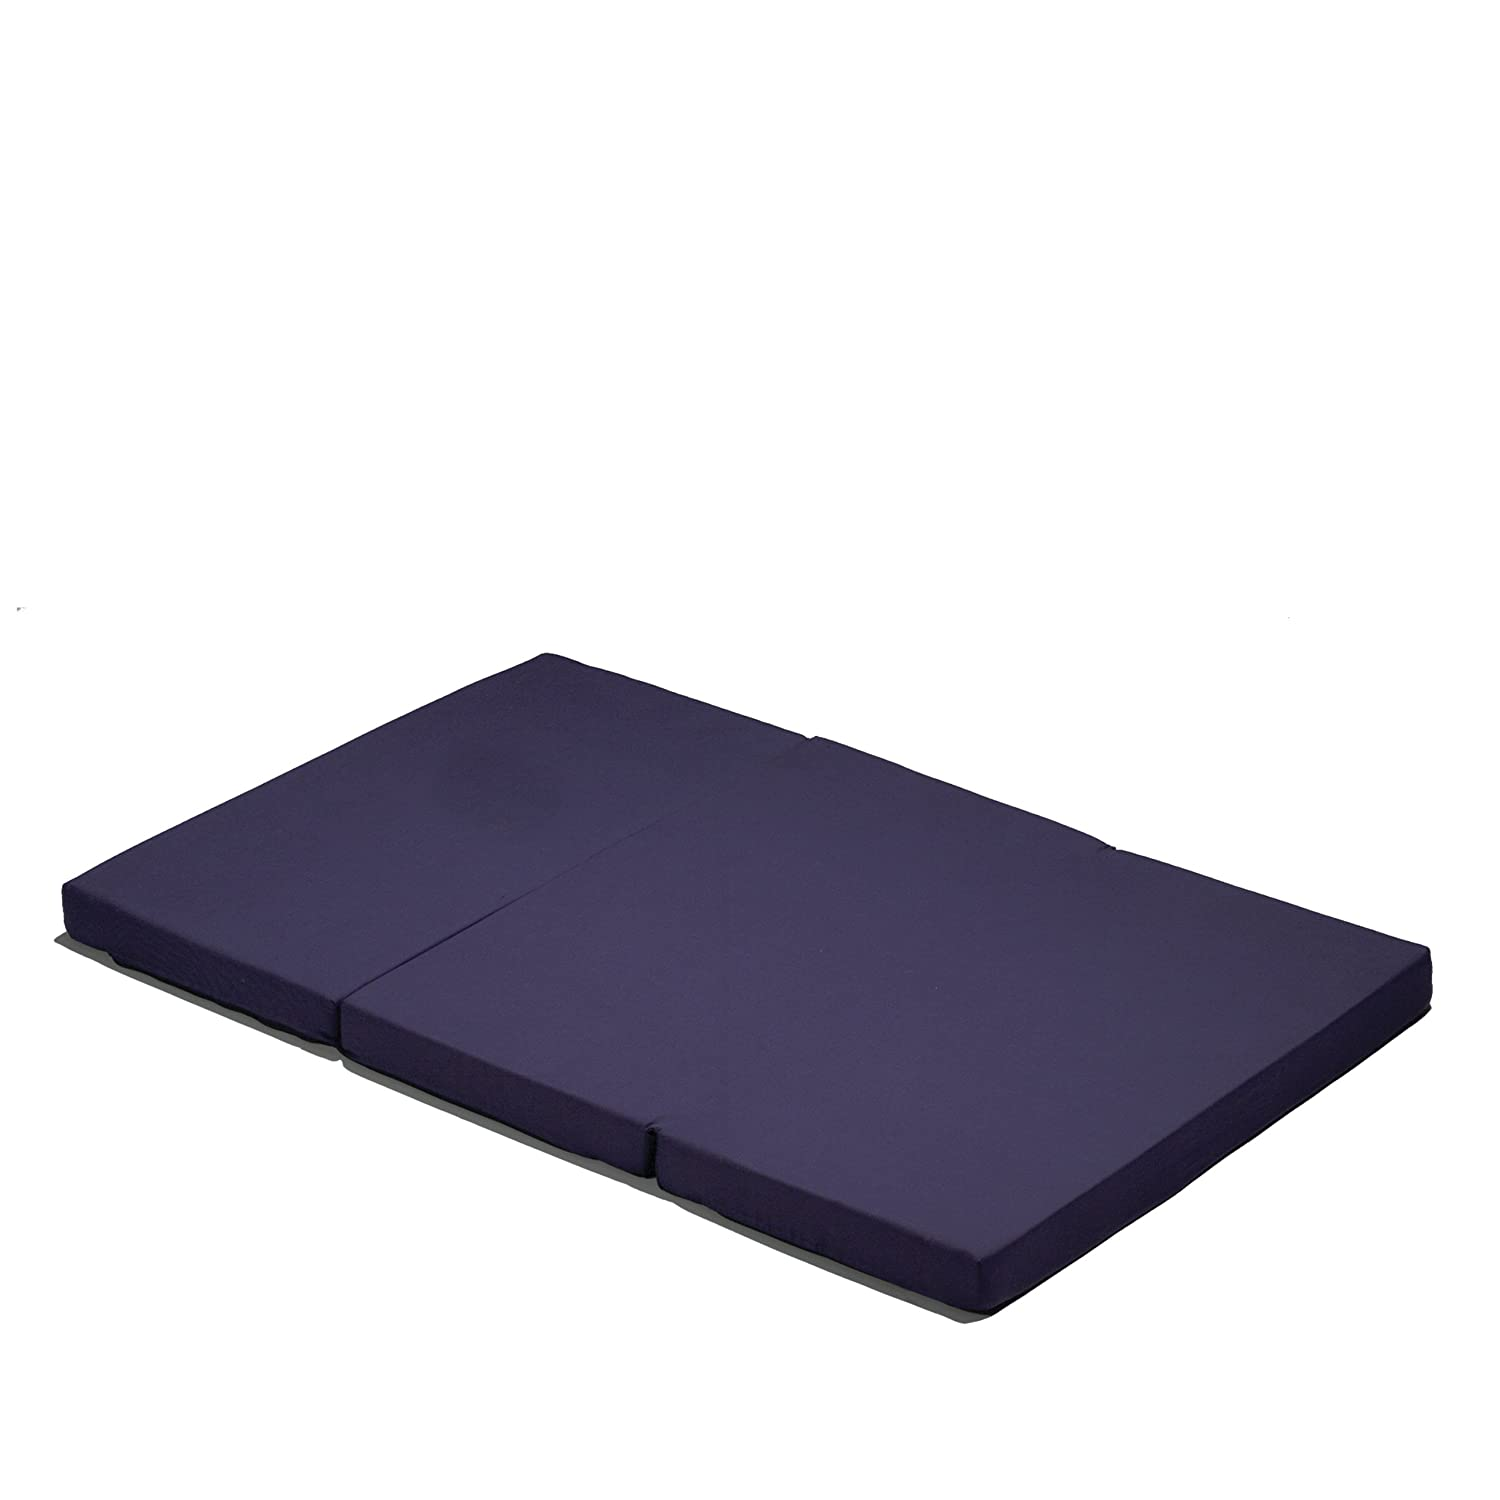 Top 10 Best Foldable Mattresses Reviews 2018 2019 On